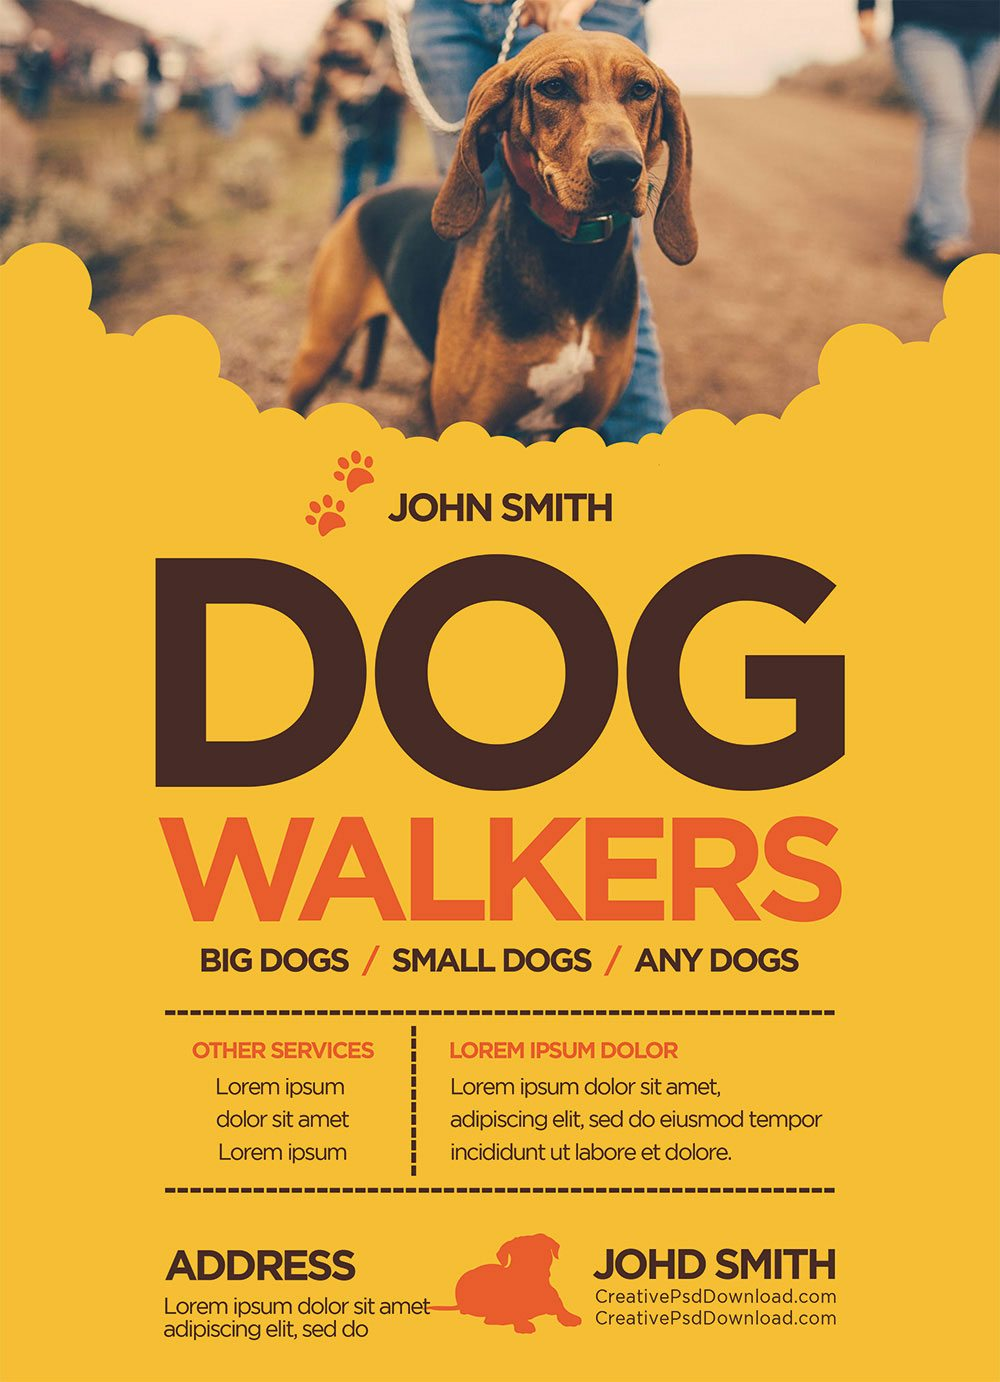 Creative Dog Walkers Flyer Showcase 6